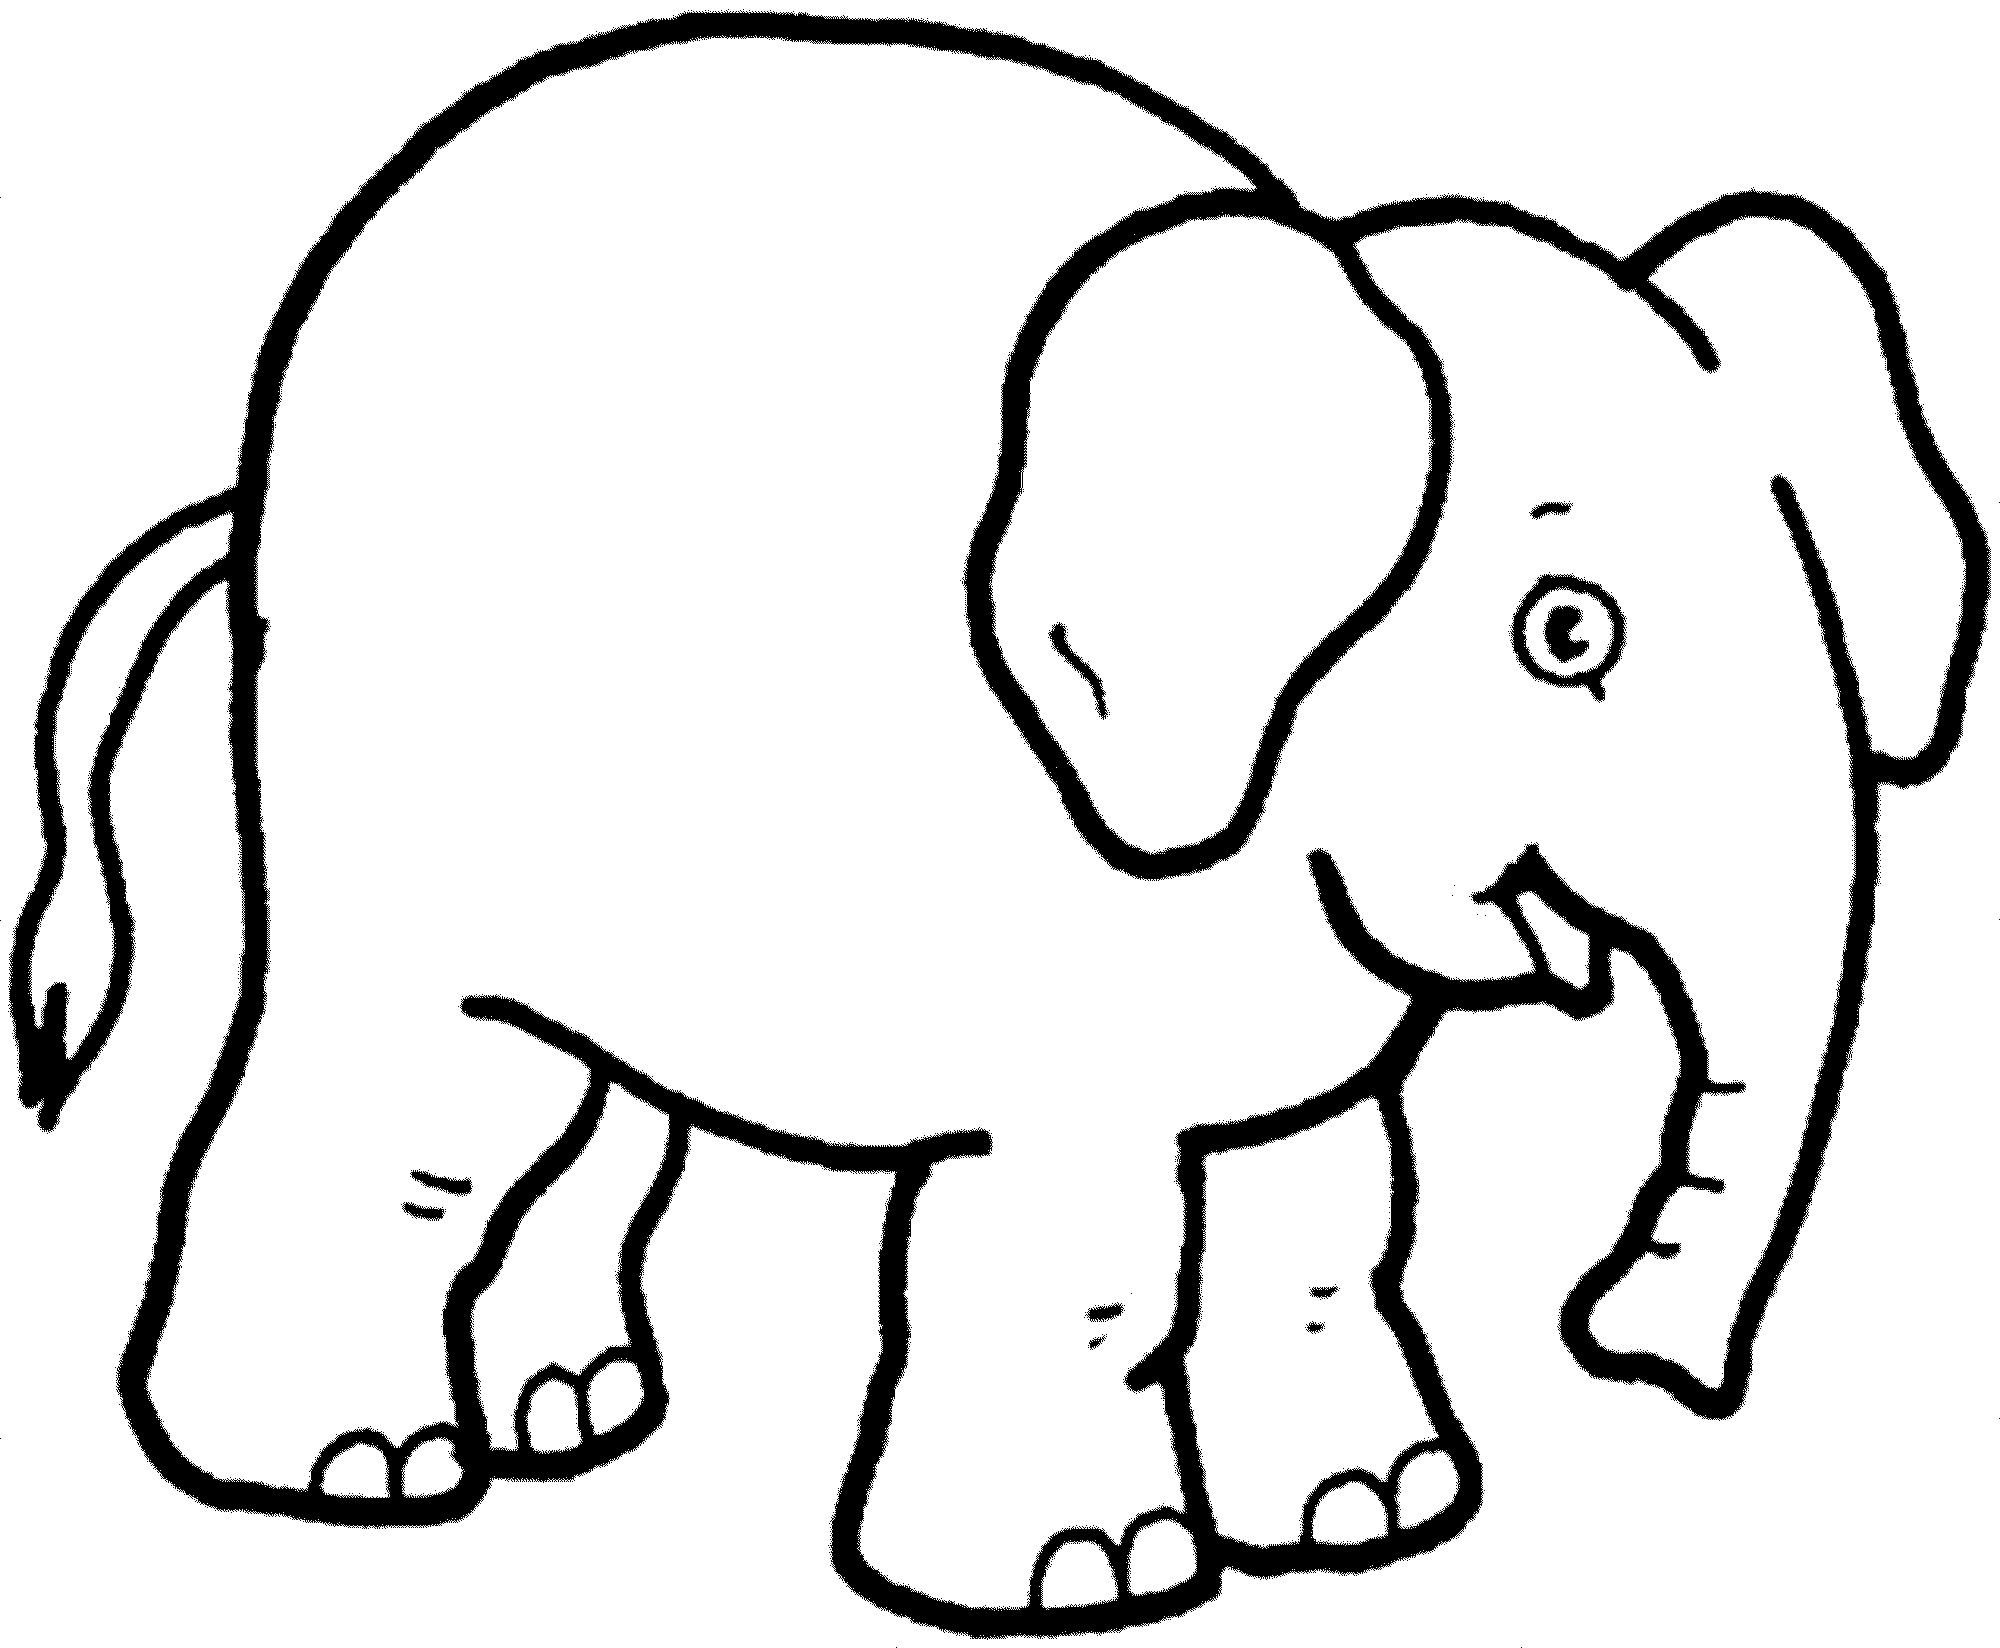 Asian Elephant Coloring Page at GetDrawings.com | Free for personal ...